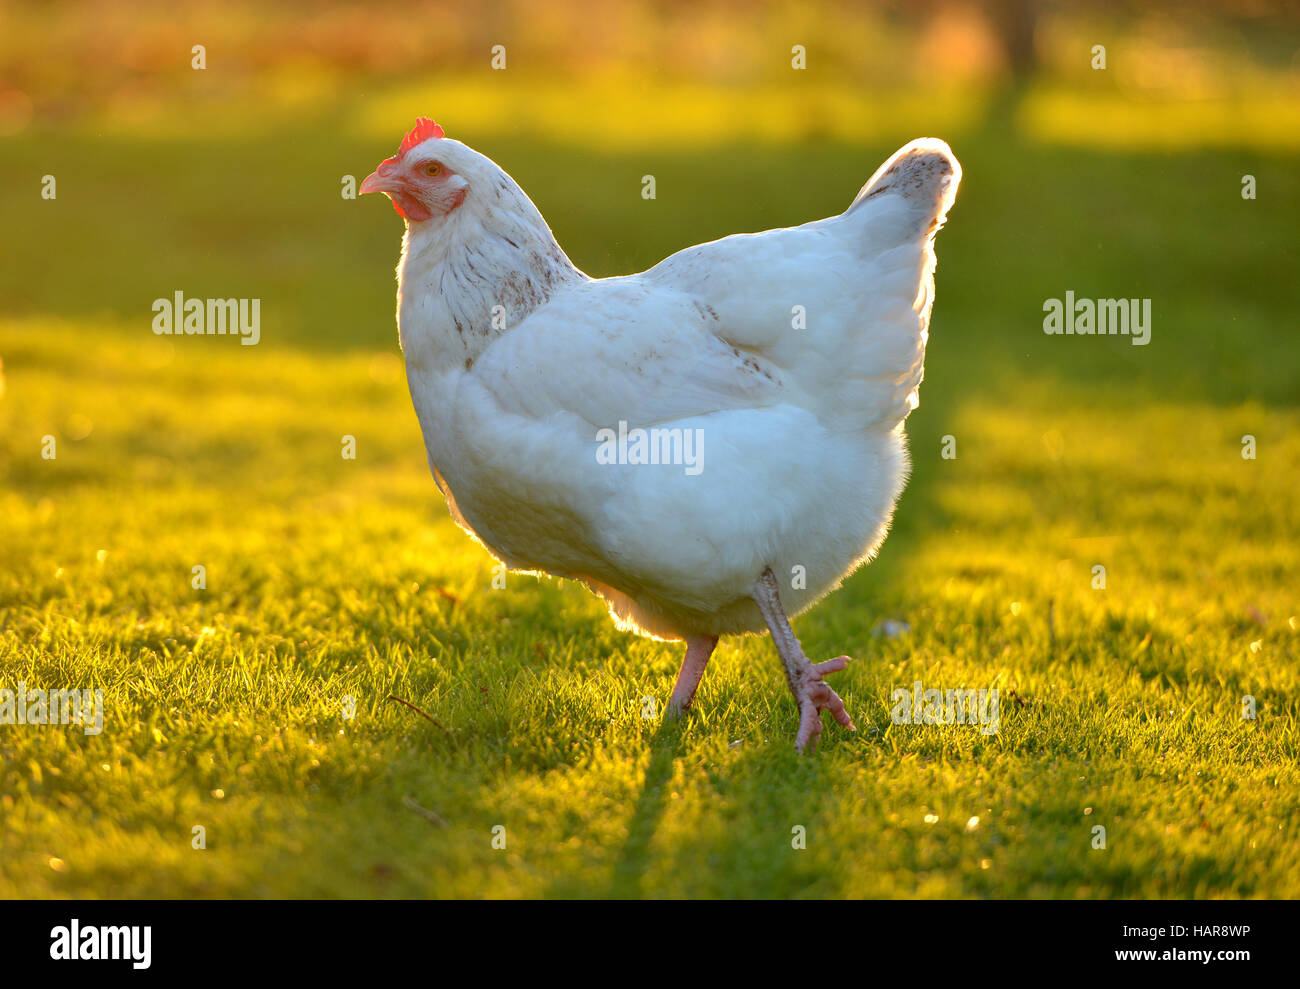 Chickens in a back garden with golden sunlight. - Stock Image